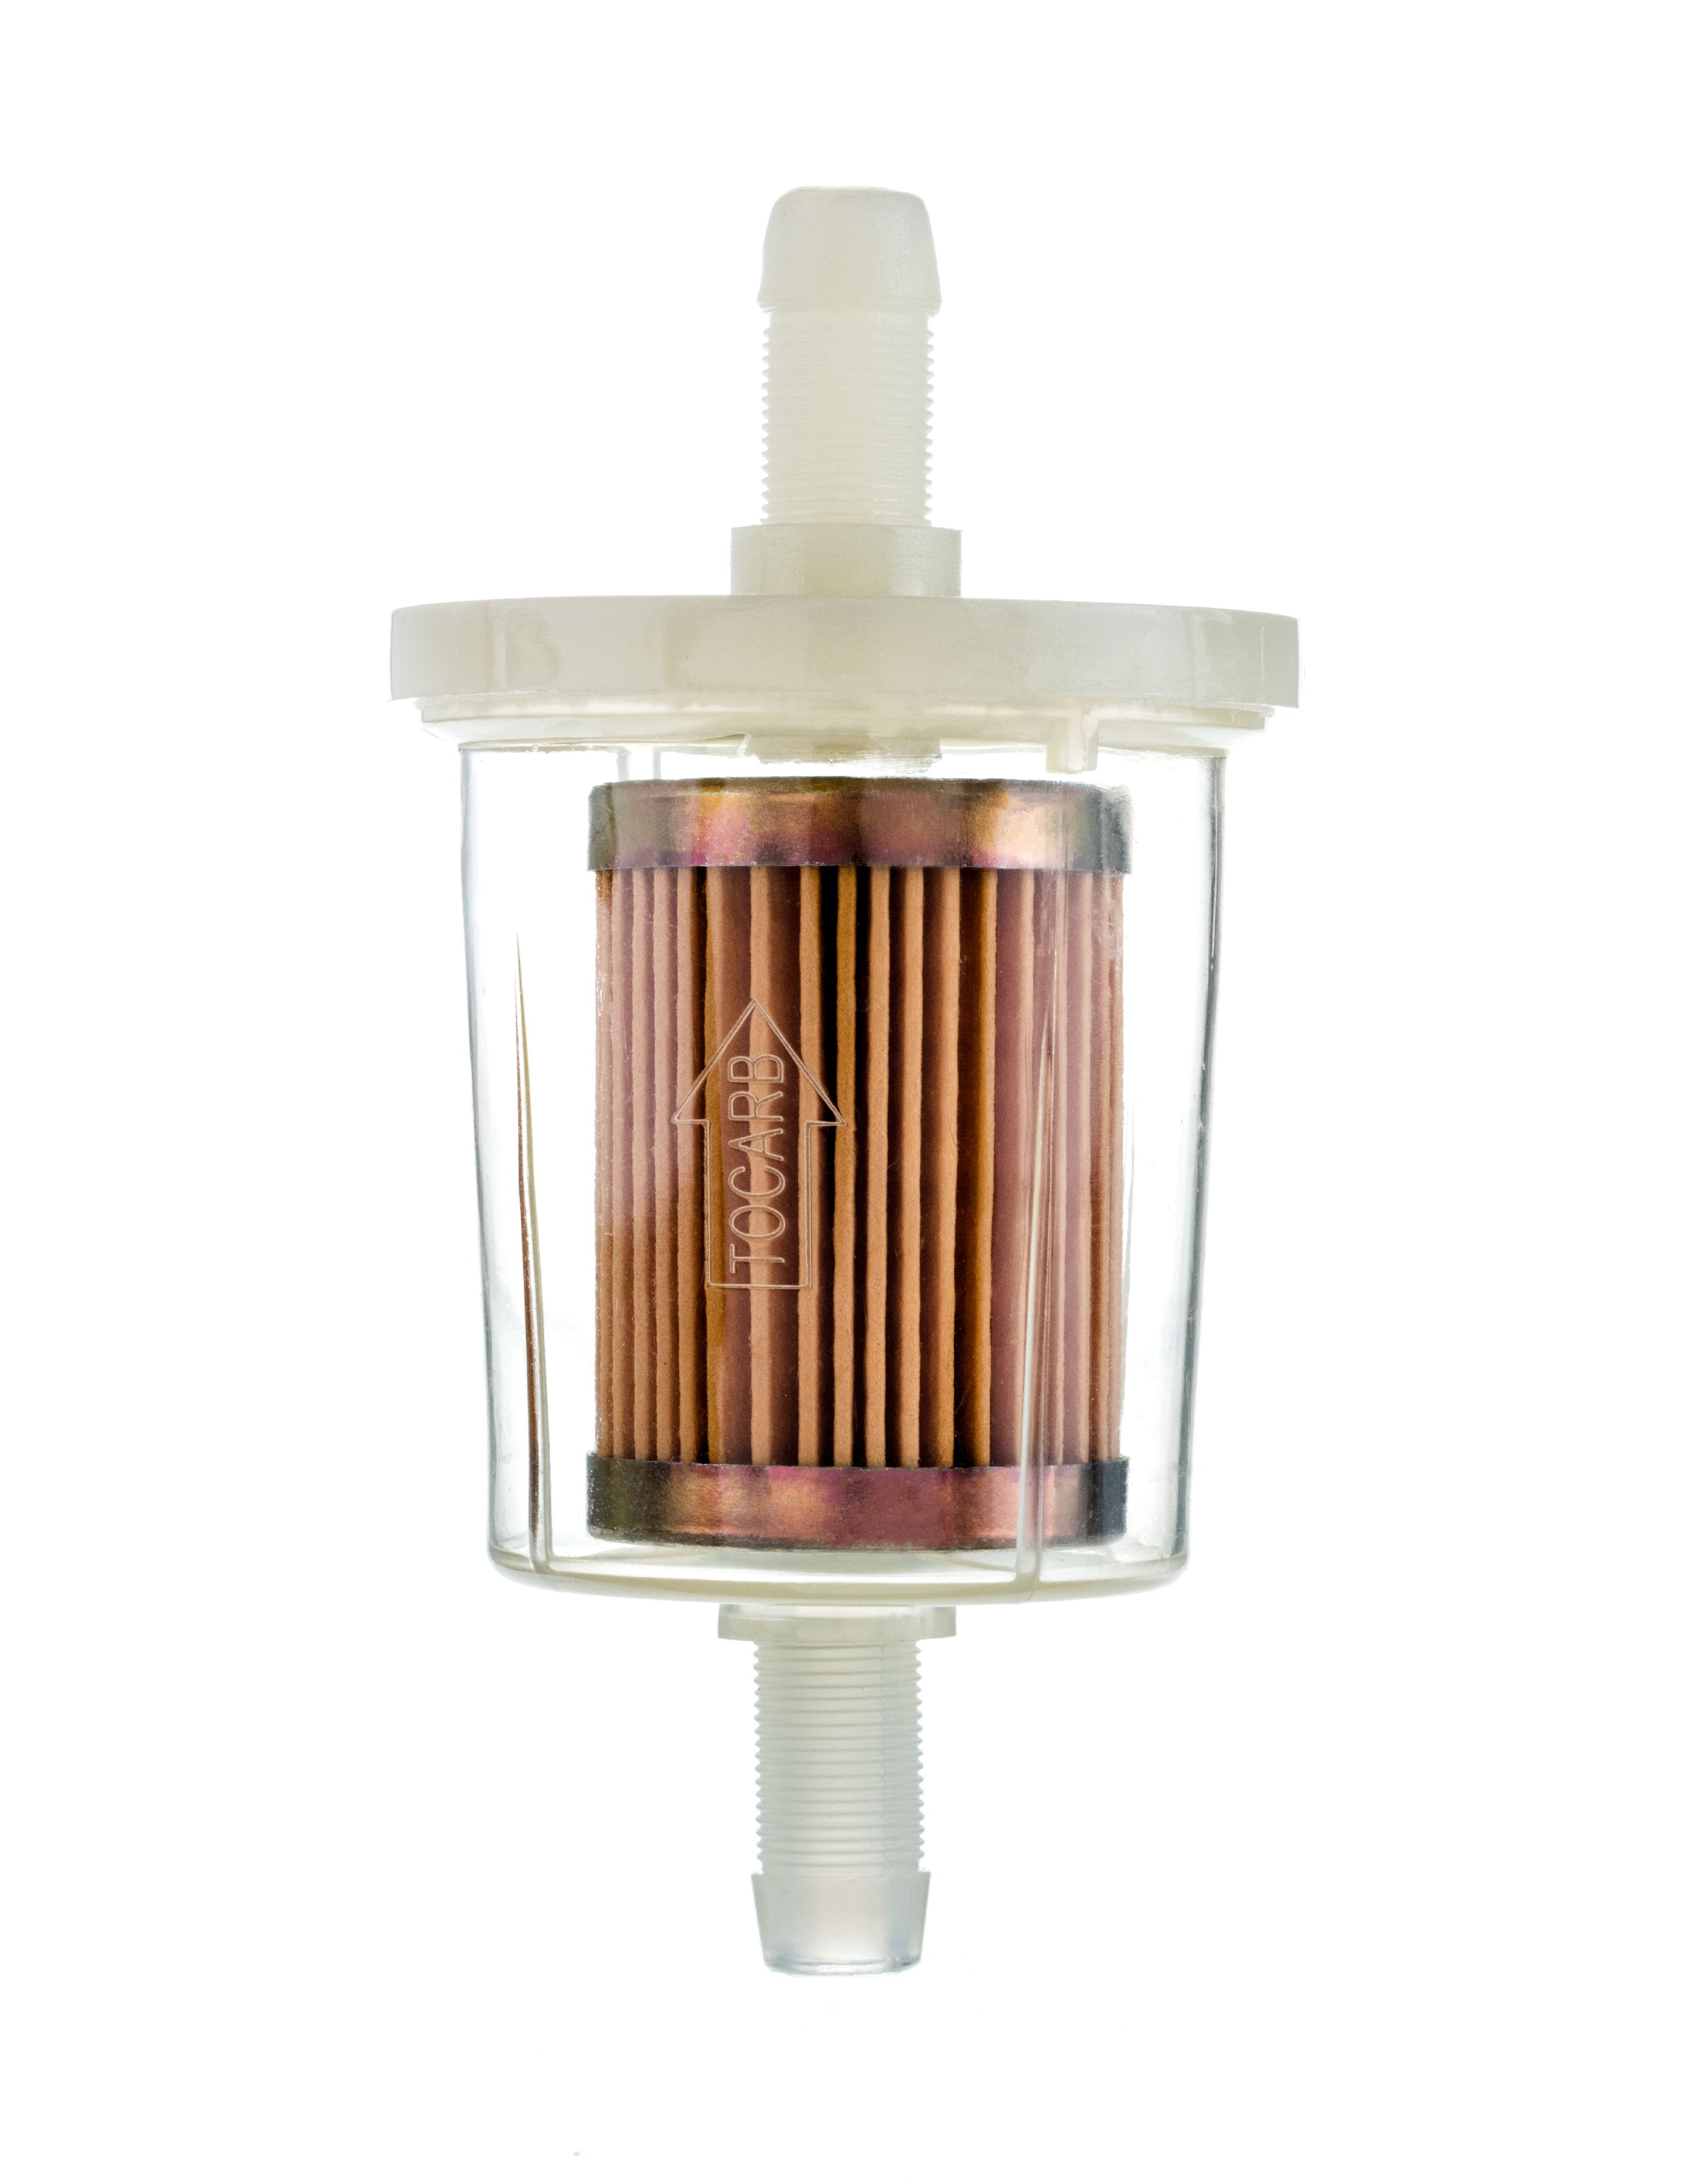 AMIS 1//2-28 NAPA 4003,WIX 24003,Car FUEL FILTER 1x6 Aluminum Only For Car Used